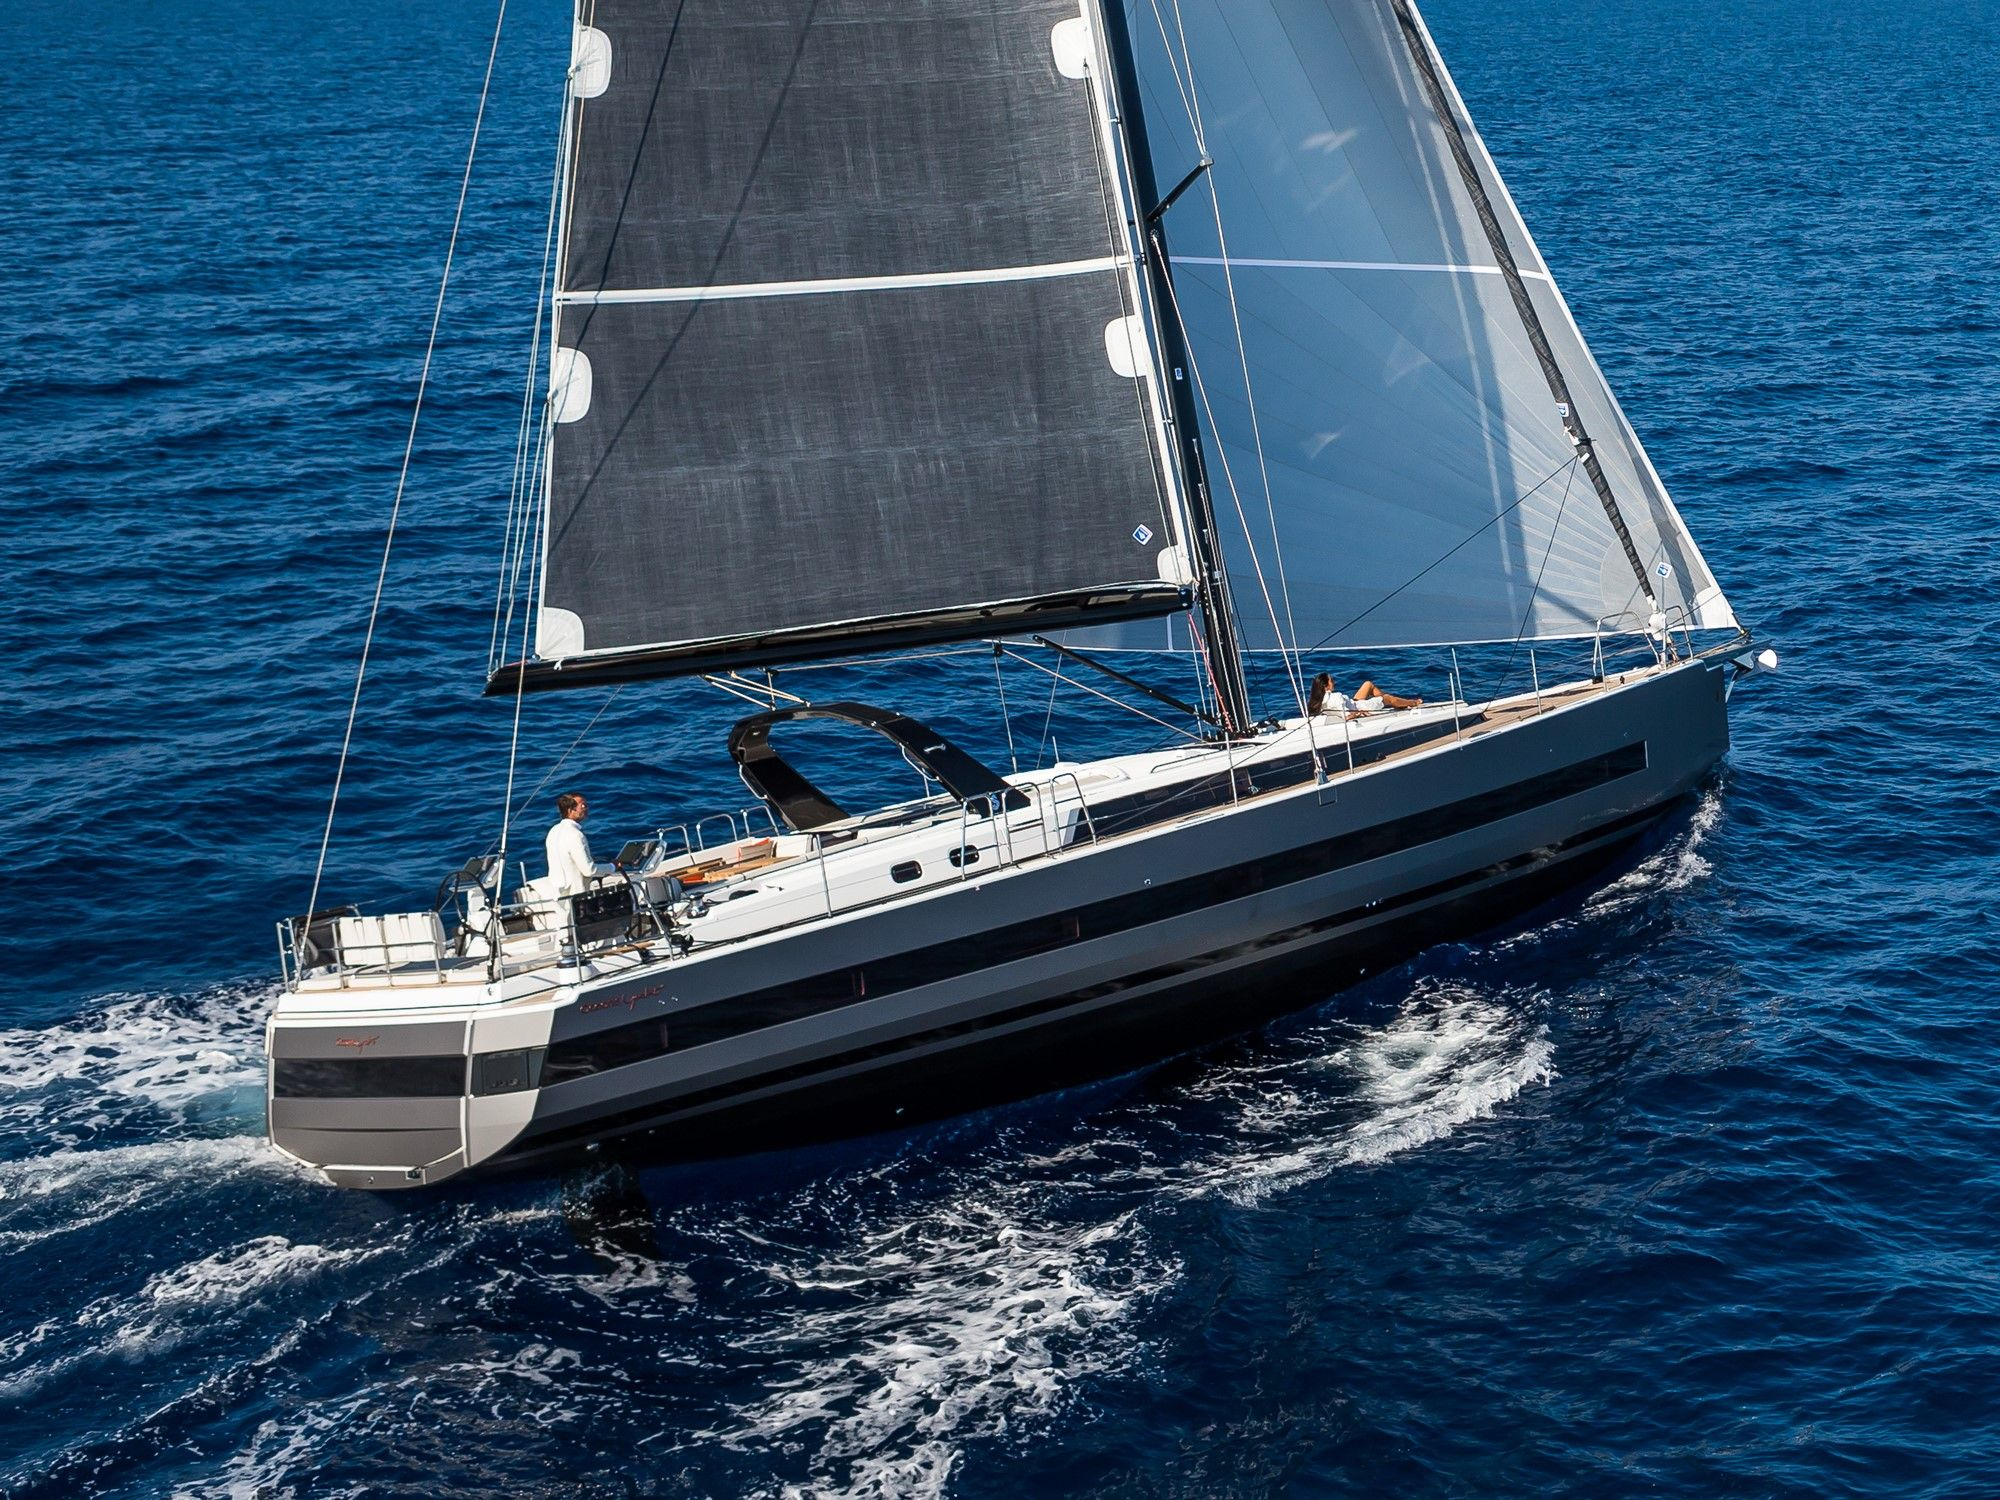 . 2018 Beneteau Oceanis Yacht 62 Sail Boat For Sale   www yachtworld com